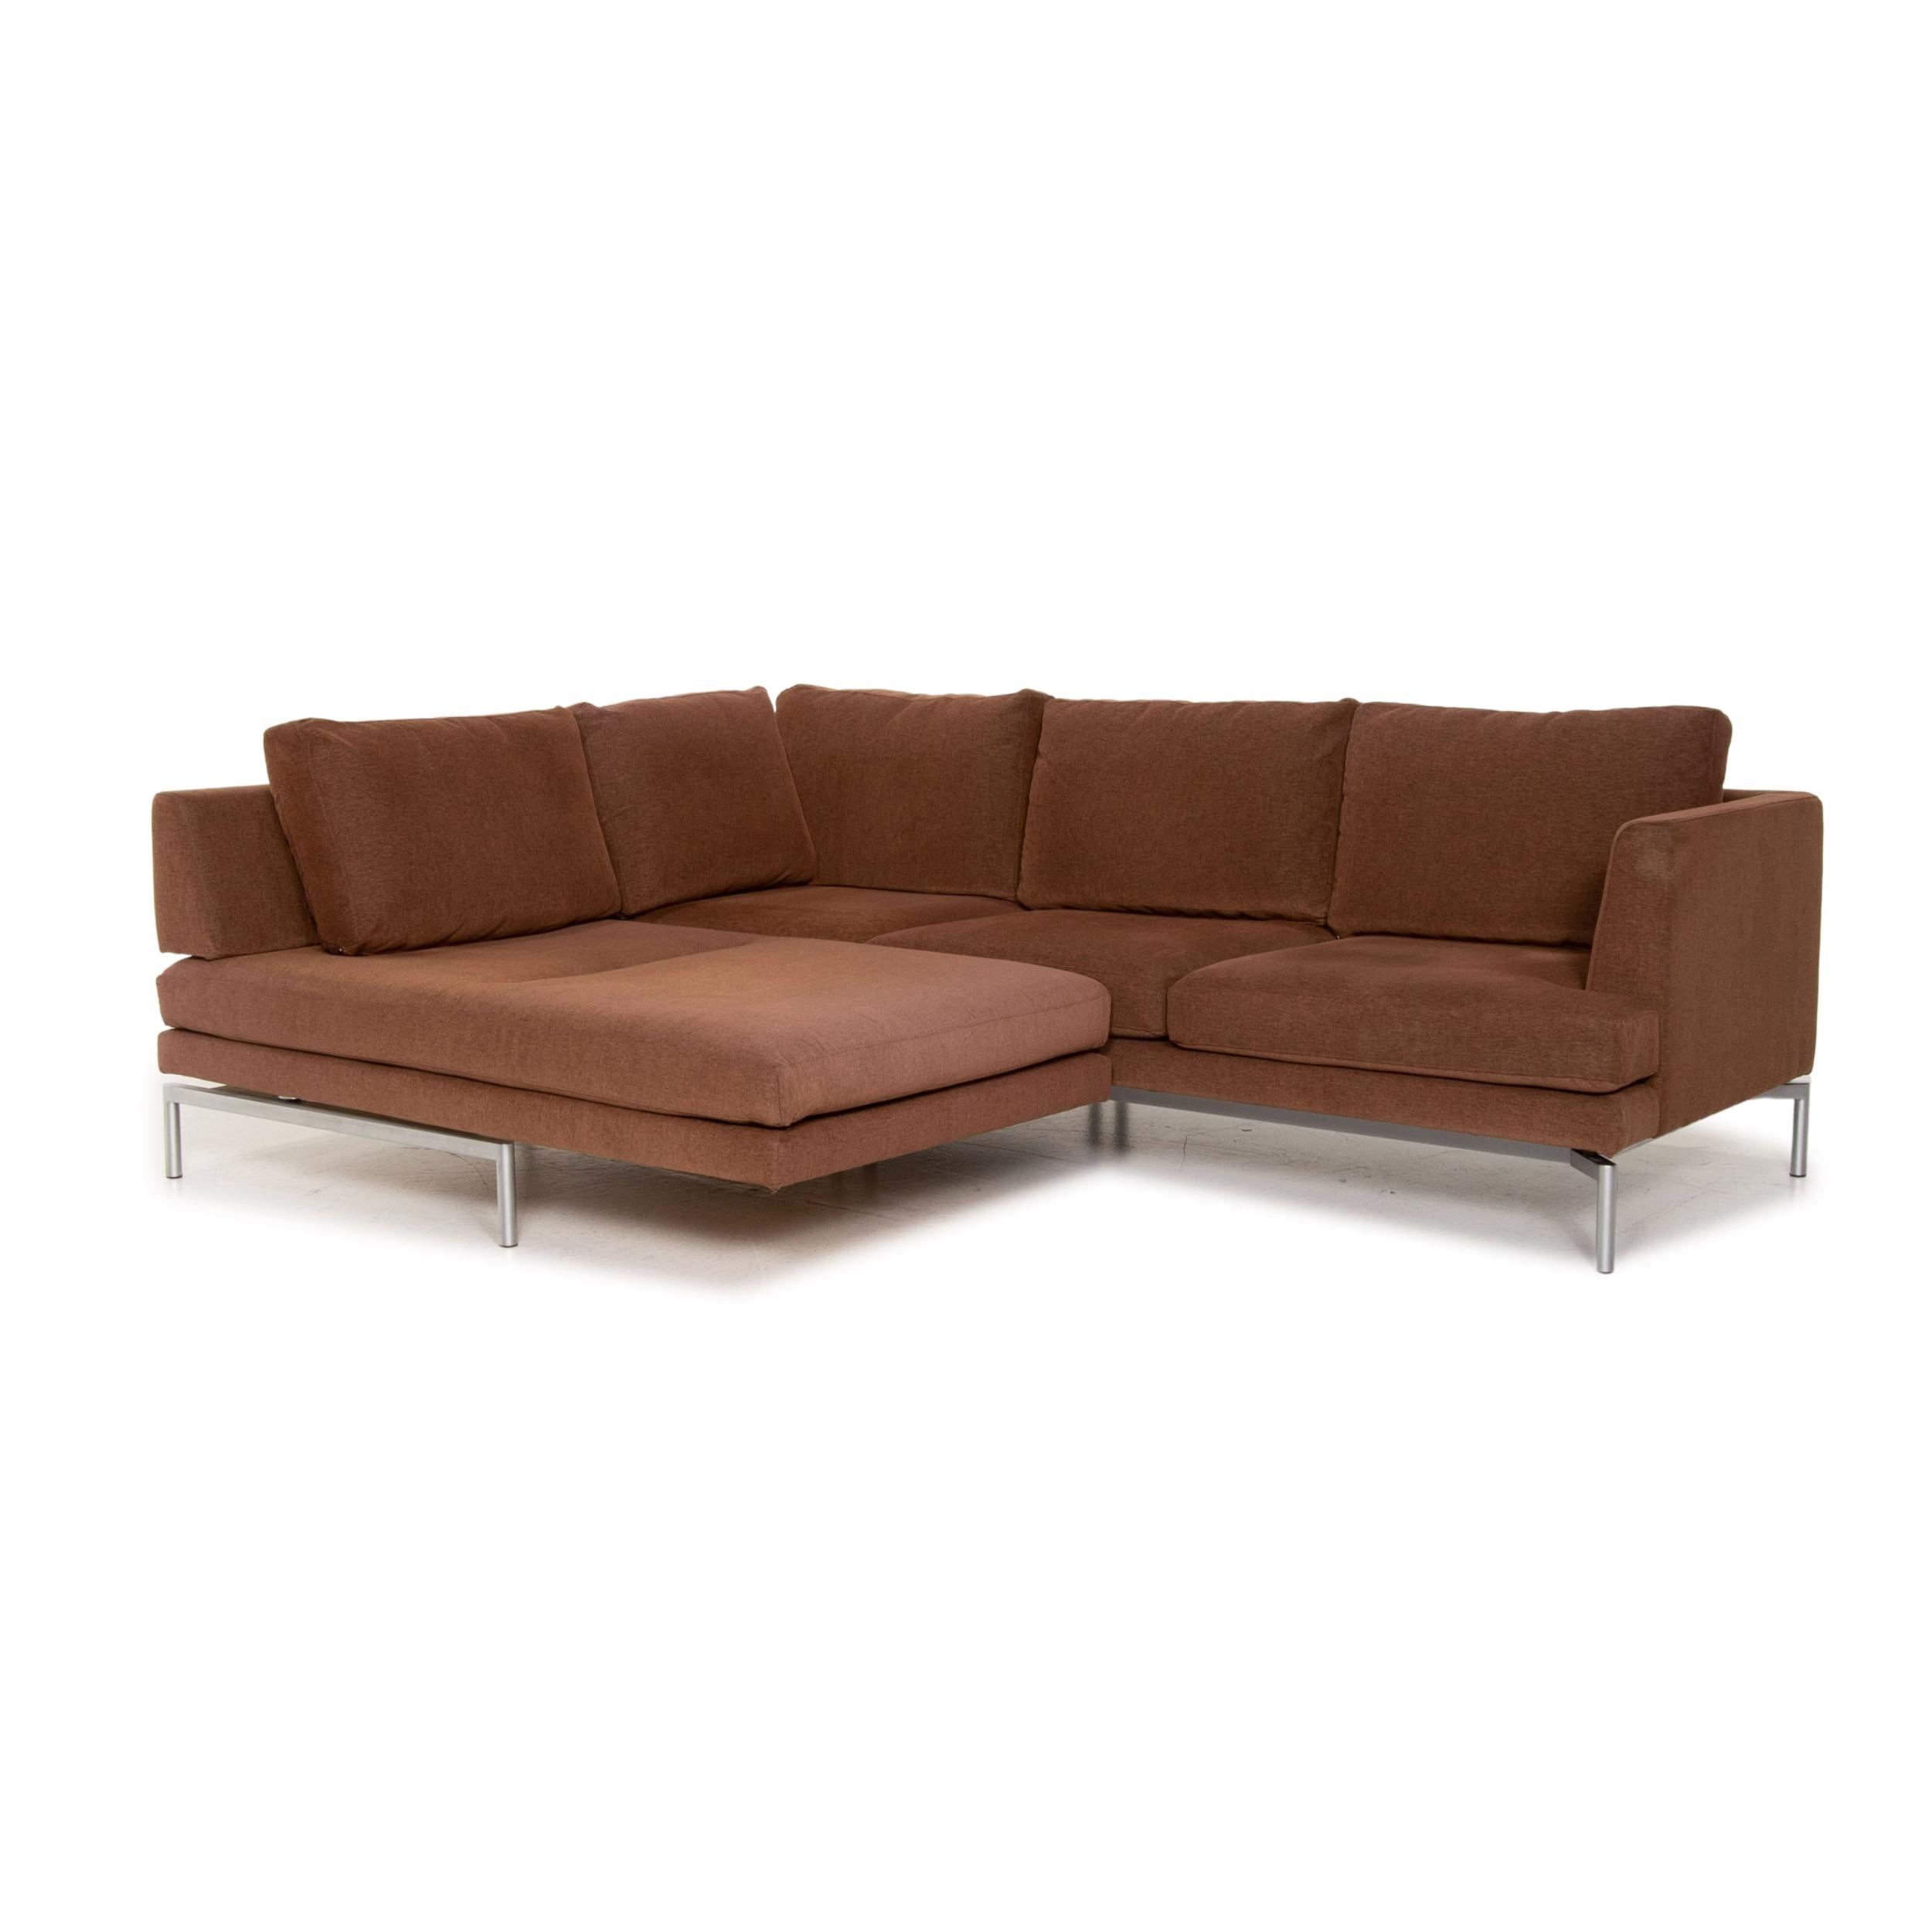 Walter Knoll Good Times Fabric Corner Sofa Brown Function Couch For Sale At 1stdibs